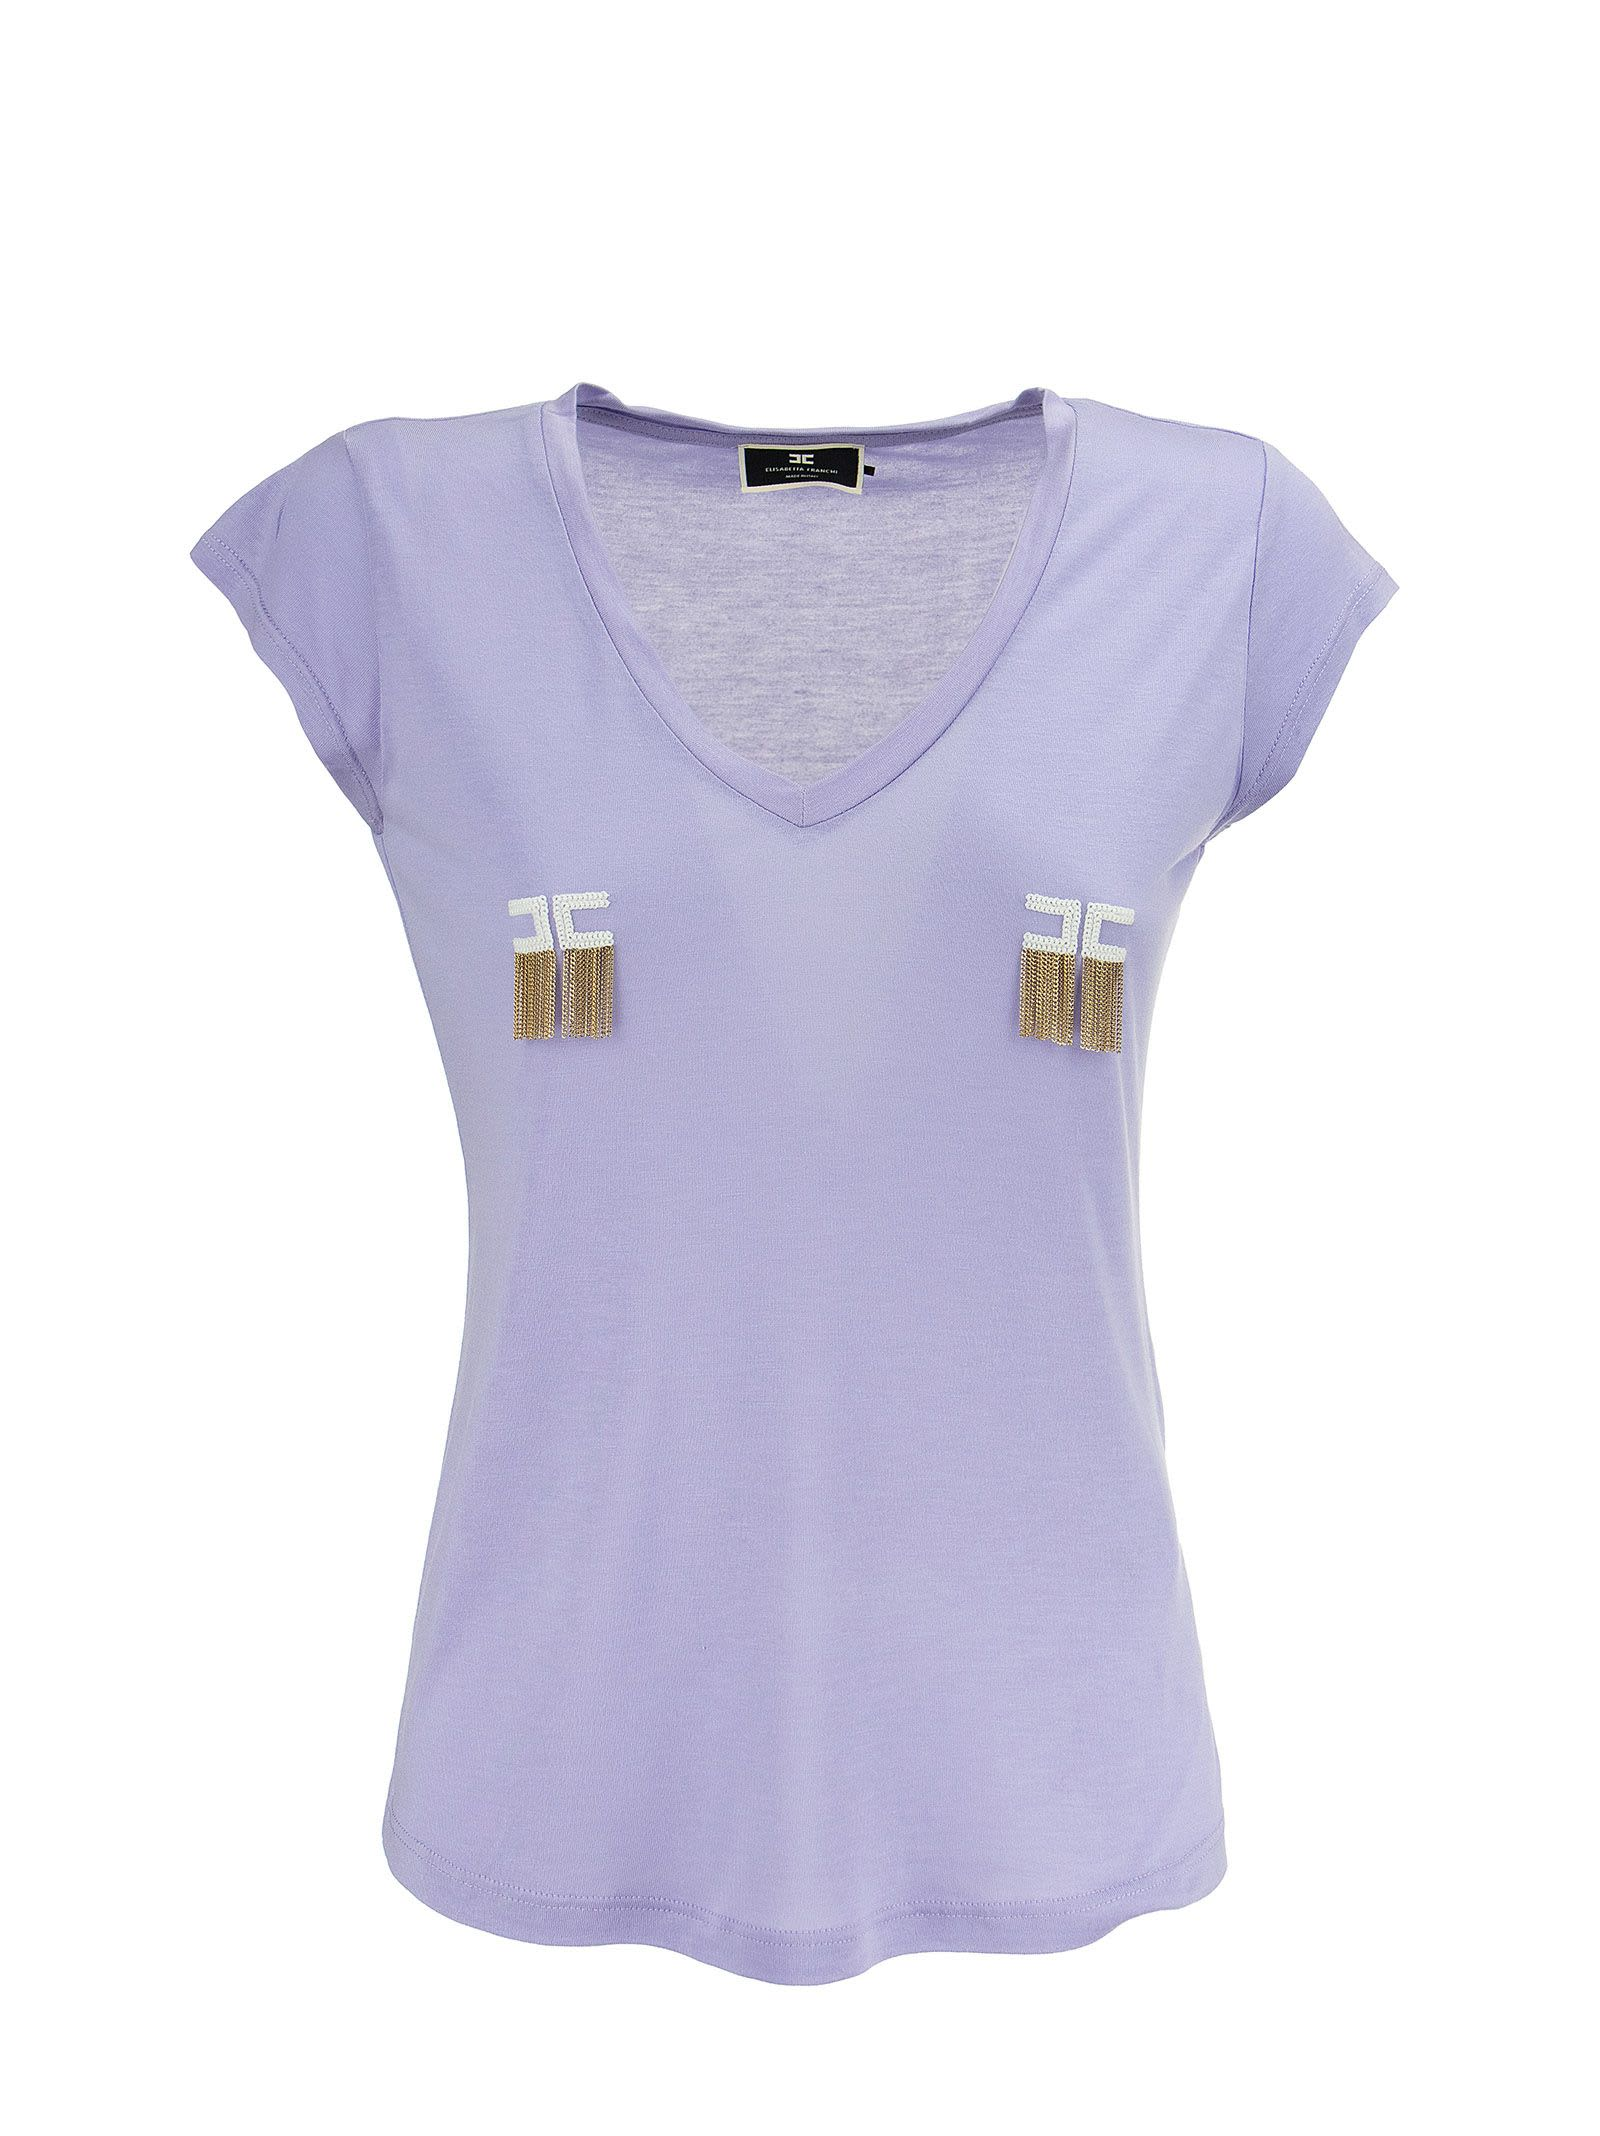 Elisabetta Franchi Celyn B. SHORT-SLEEVED T-SHIRT WITH LOGO AND MICRO CHAINS